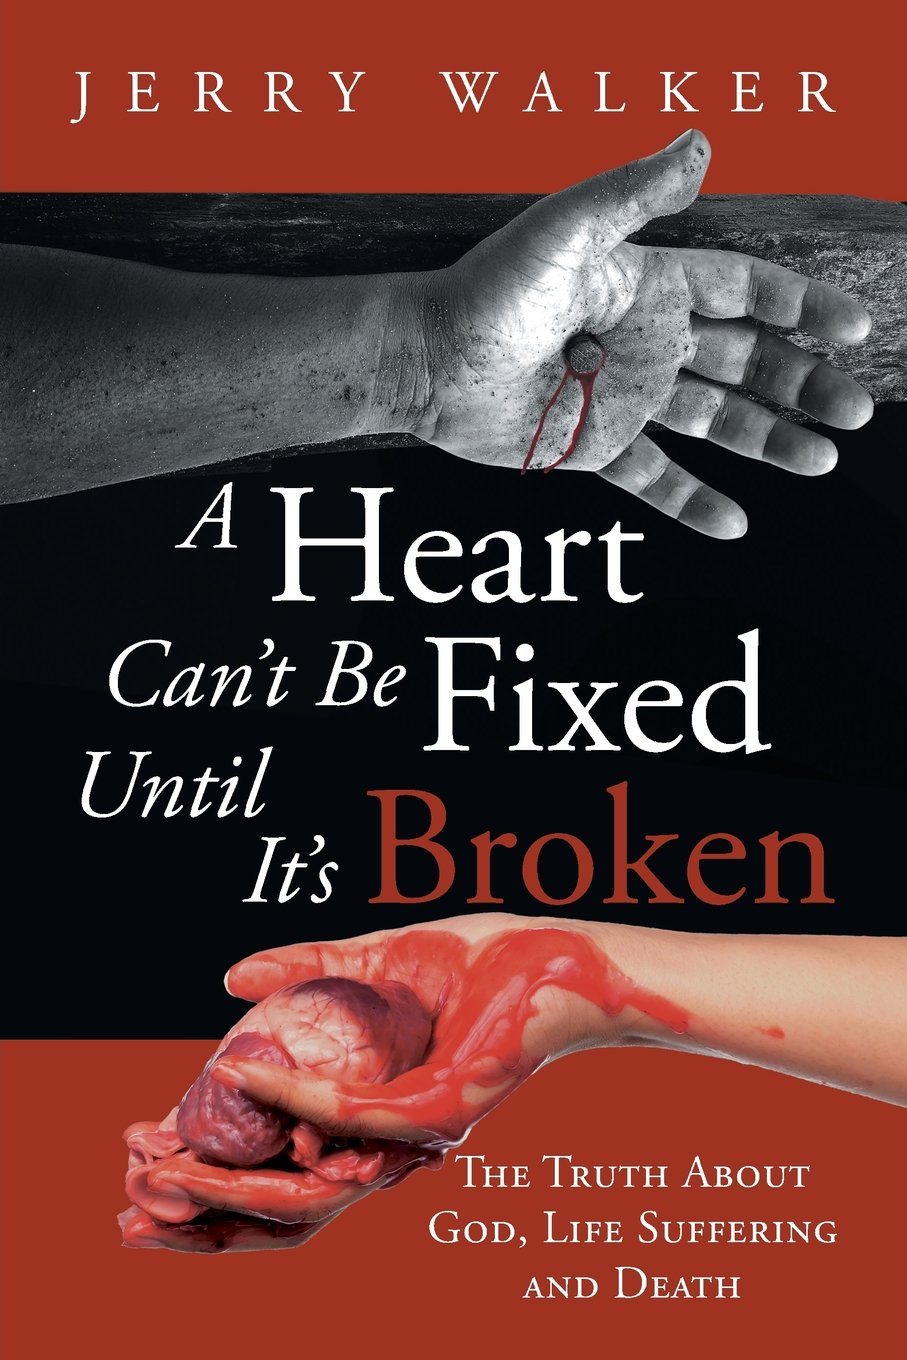 A Heart Can't Be Fixed Until It's Broken: The Truth About God, Life Suffering and Death PDF